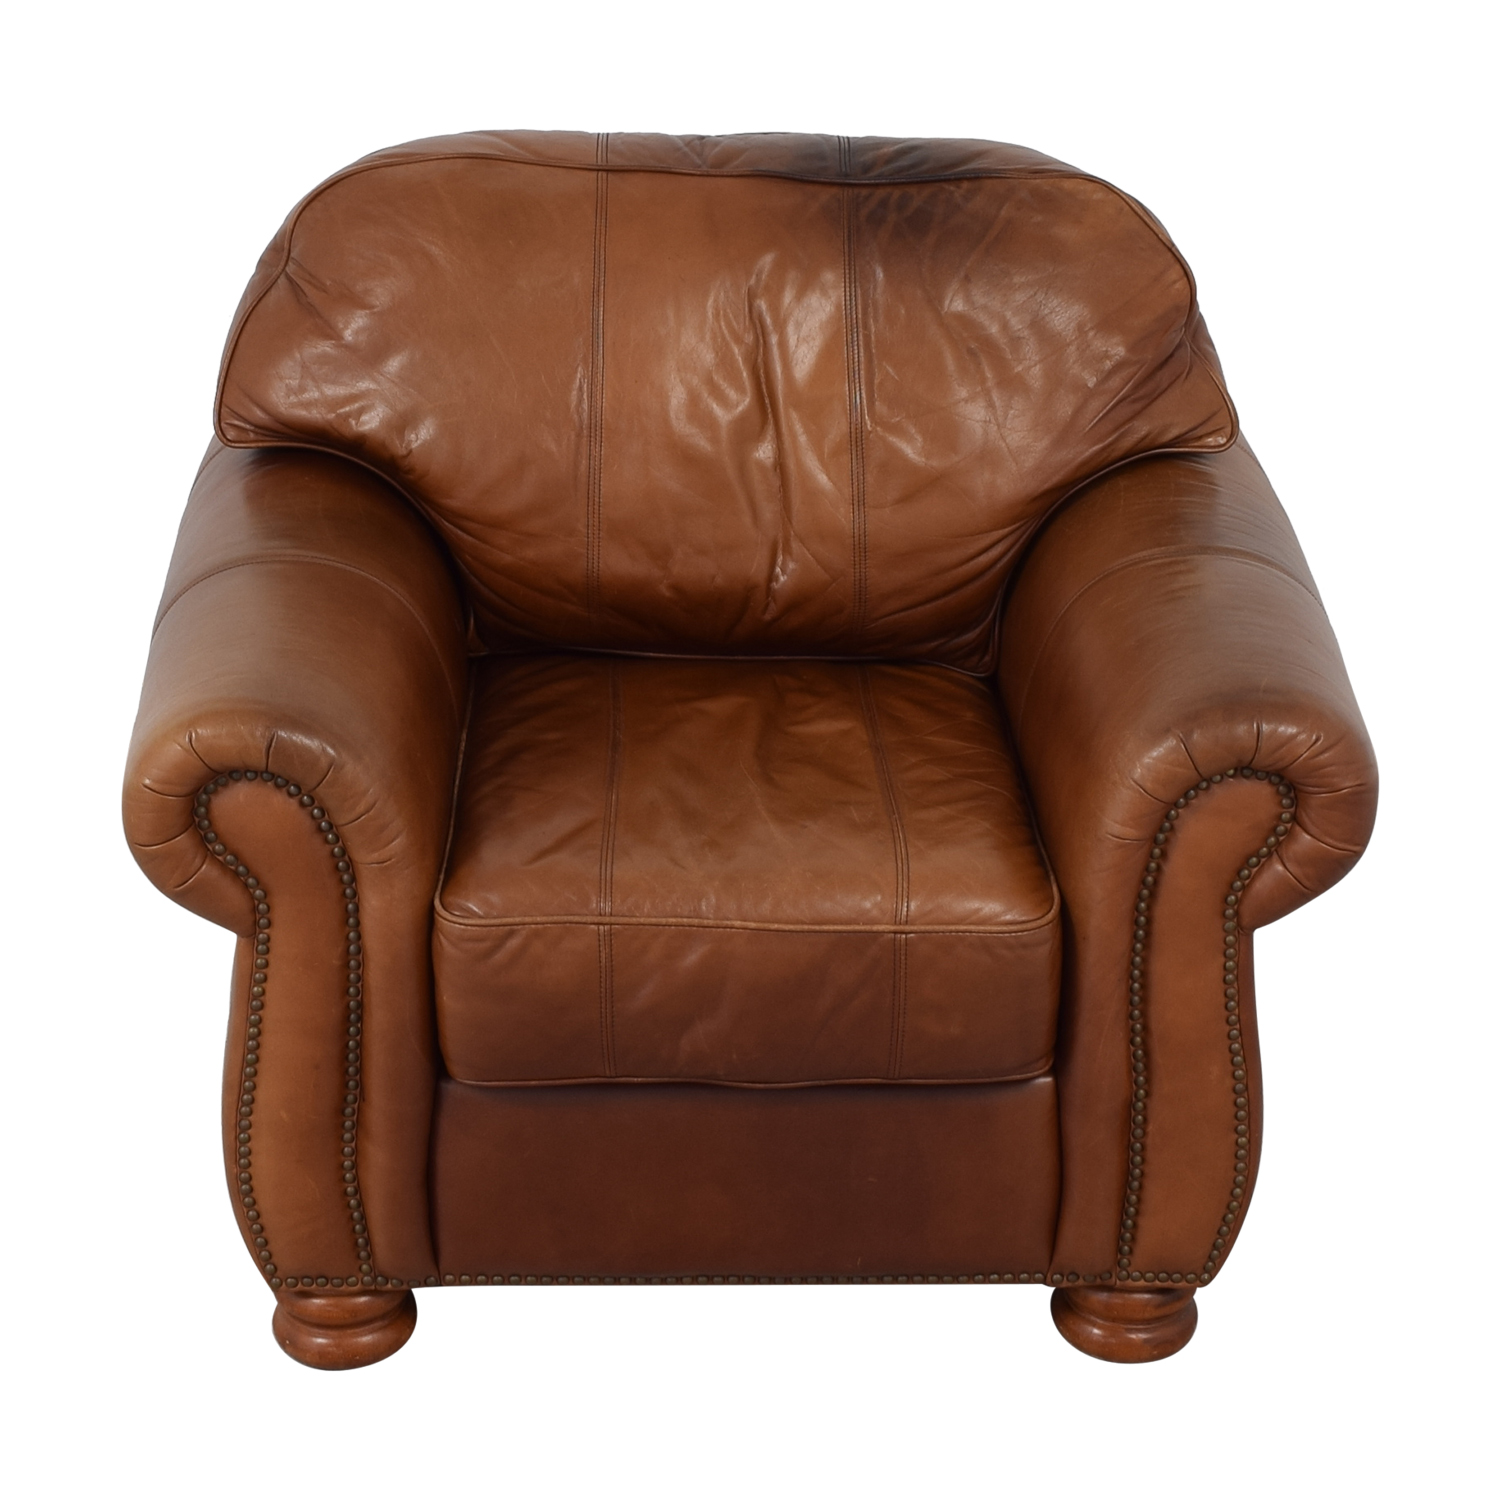 Thomasville Leather Sofa Chair / Accent Chairs